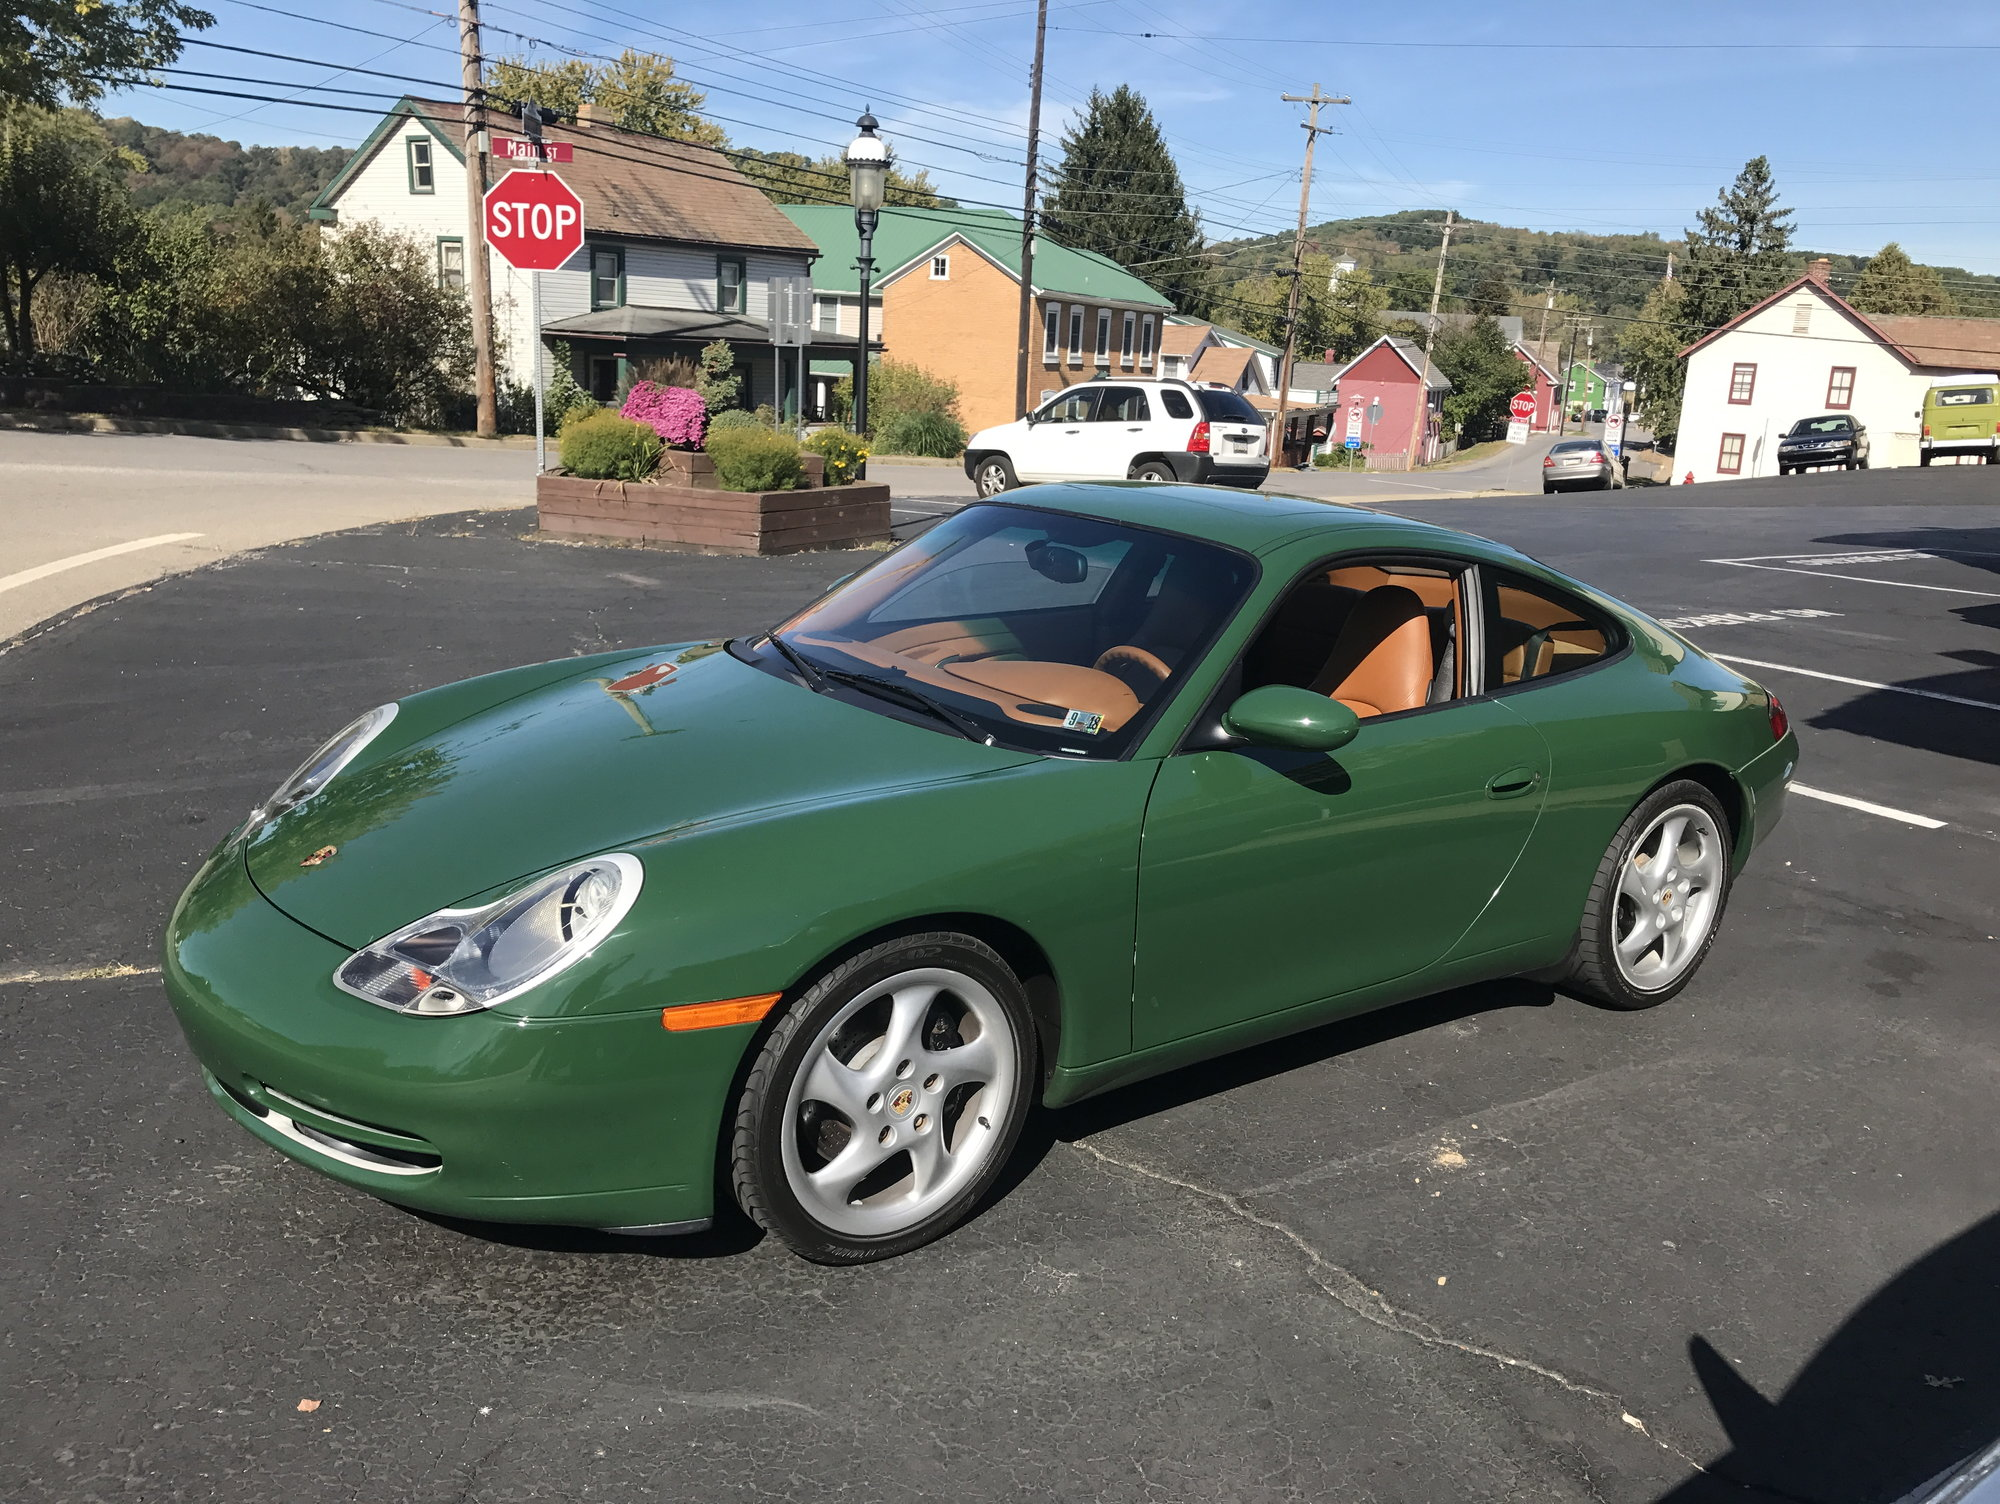 How About A PTS (Paint To Sample) Green 996 With Natural Leather Interior?  I Know I Shouldnu0027t, But I Canu0027t Help But Like It!